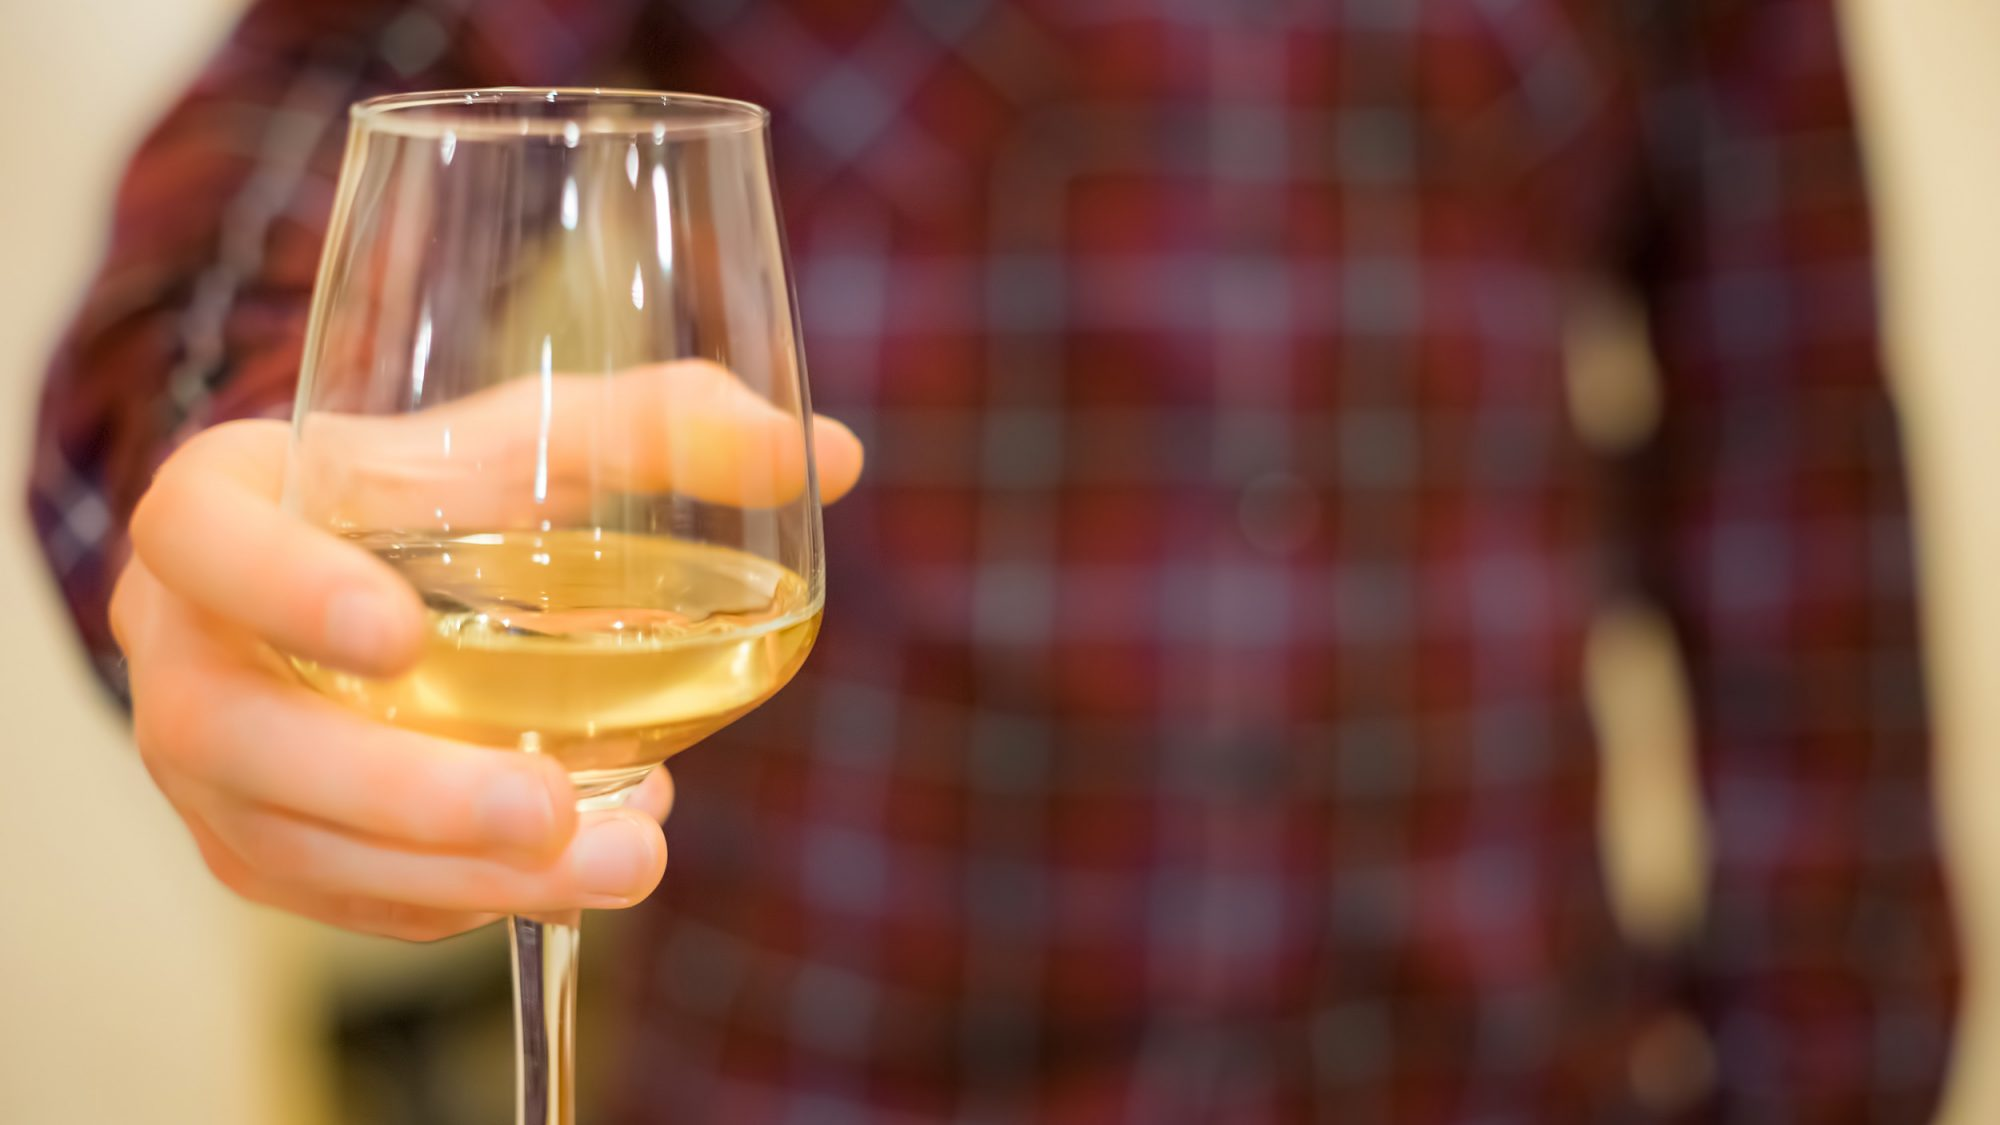 Are you holding your wine glass the wrong way food wine how to hold a wine glass ccuart Gallery